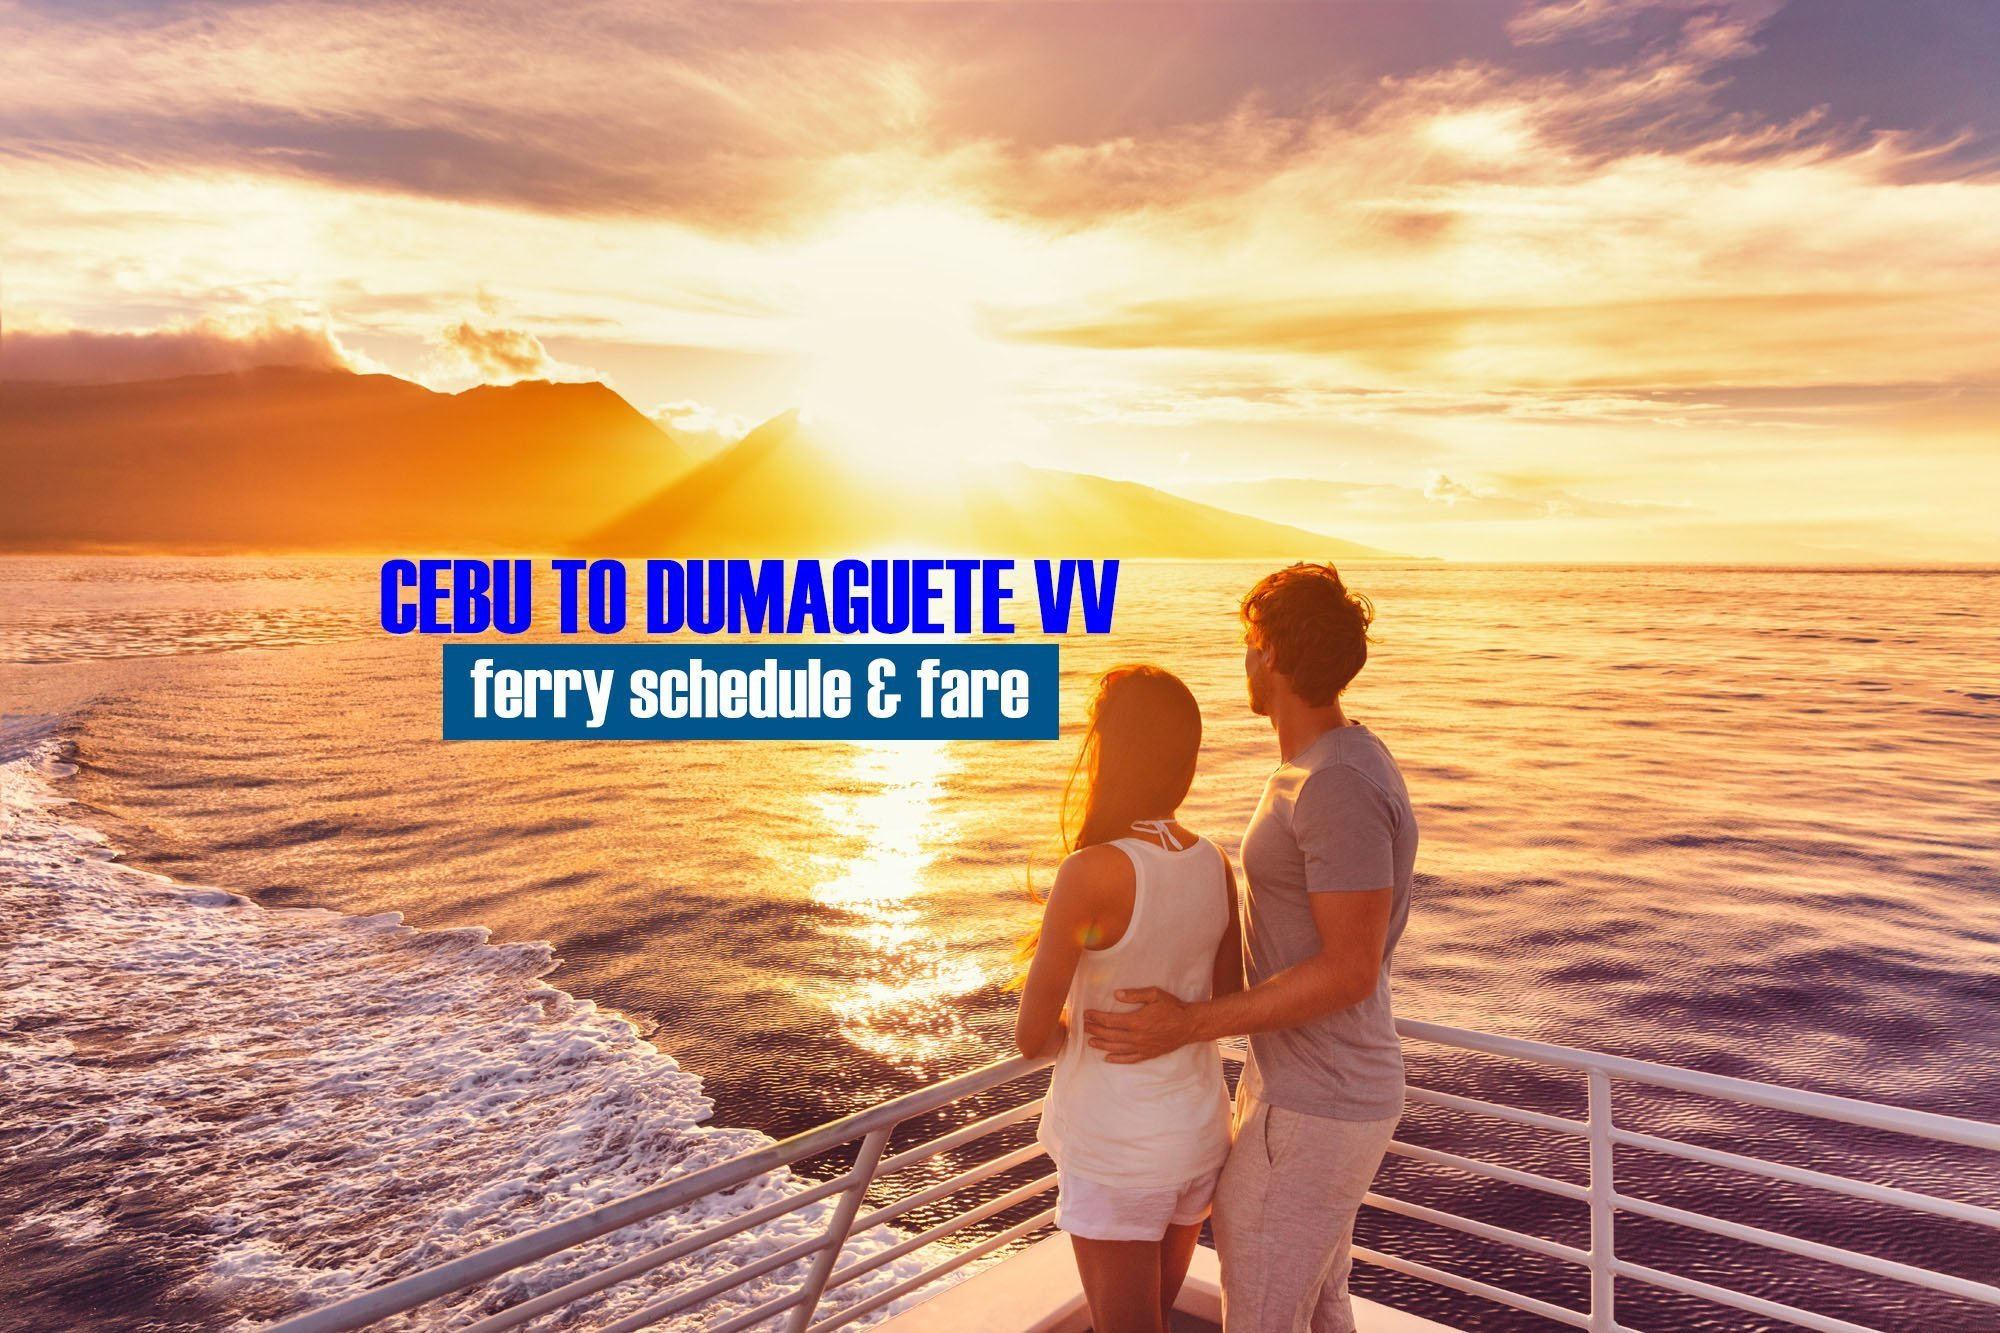 Cebu to Dumaguete: 2019 Ferry Schedule and Fare Rates